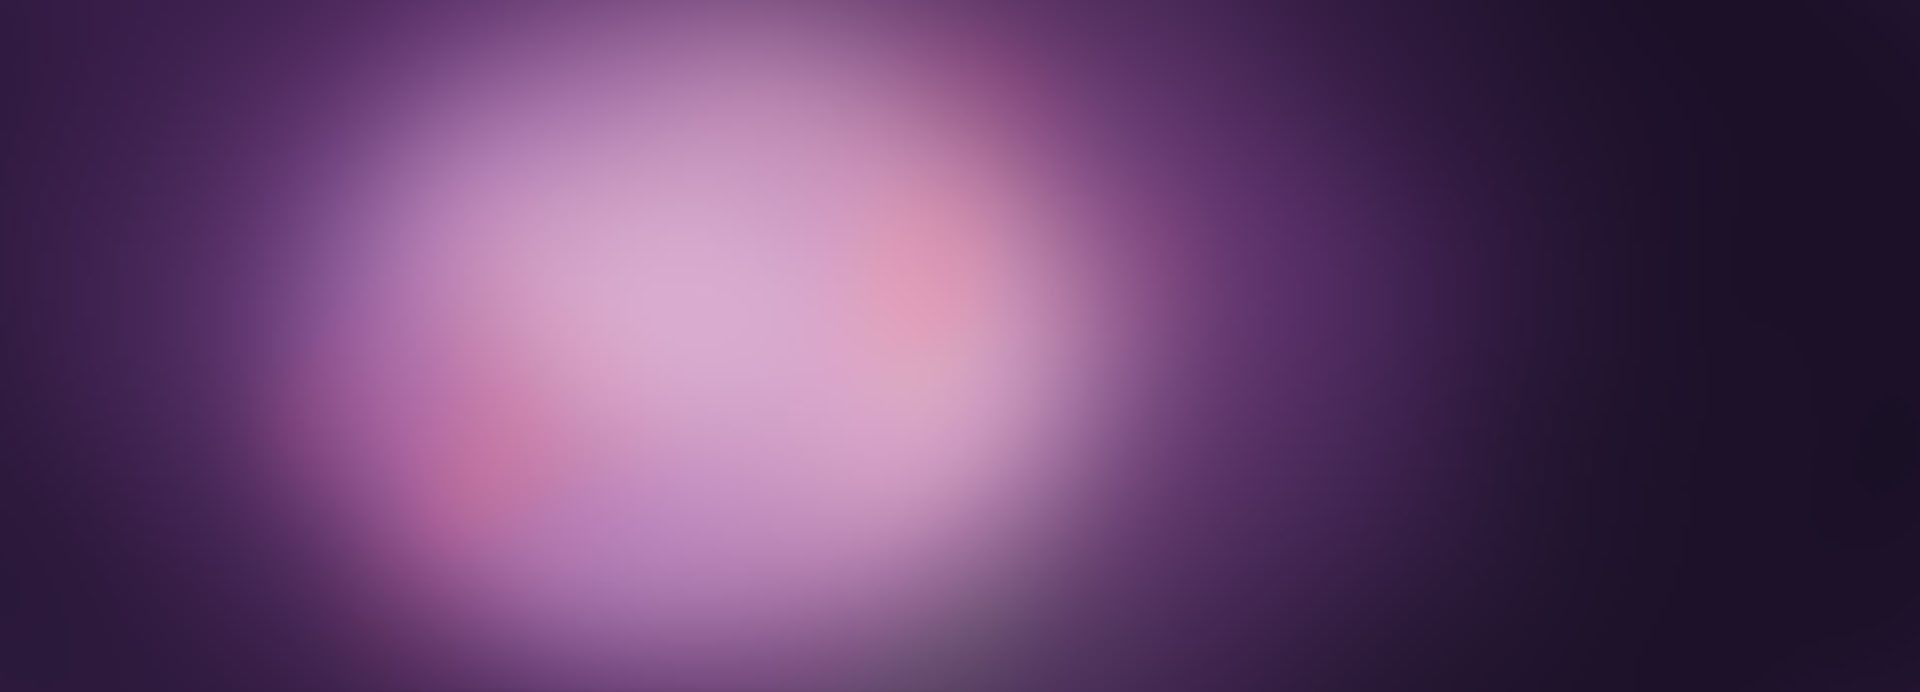 android background